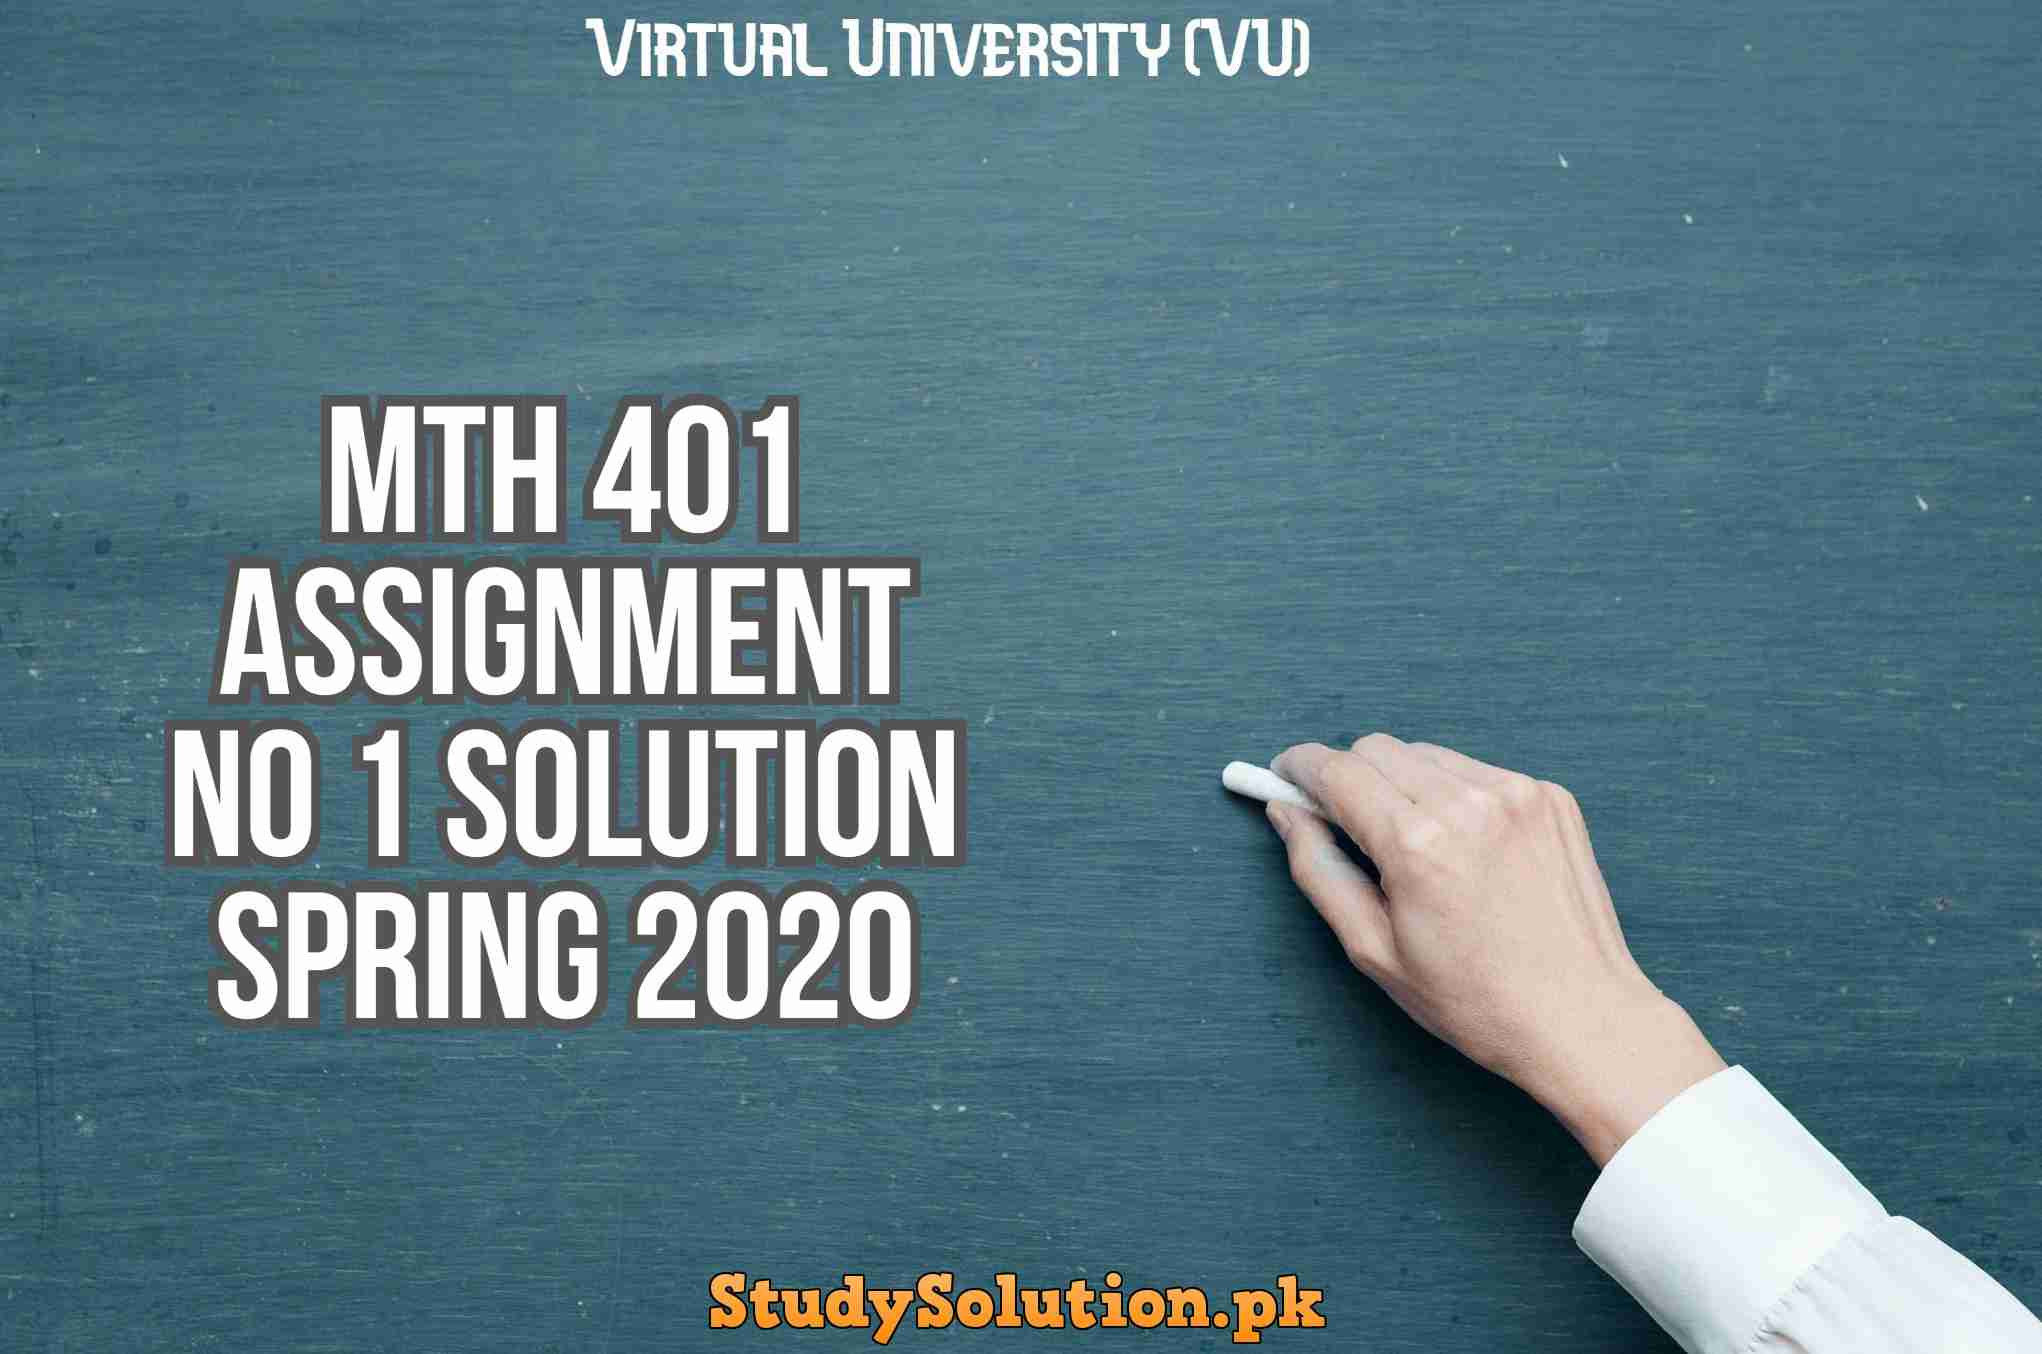 MTH 401 Assignment No 1 Solution Spring 2020